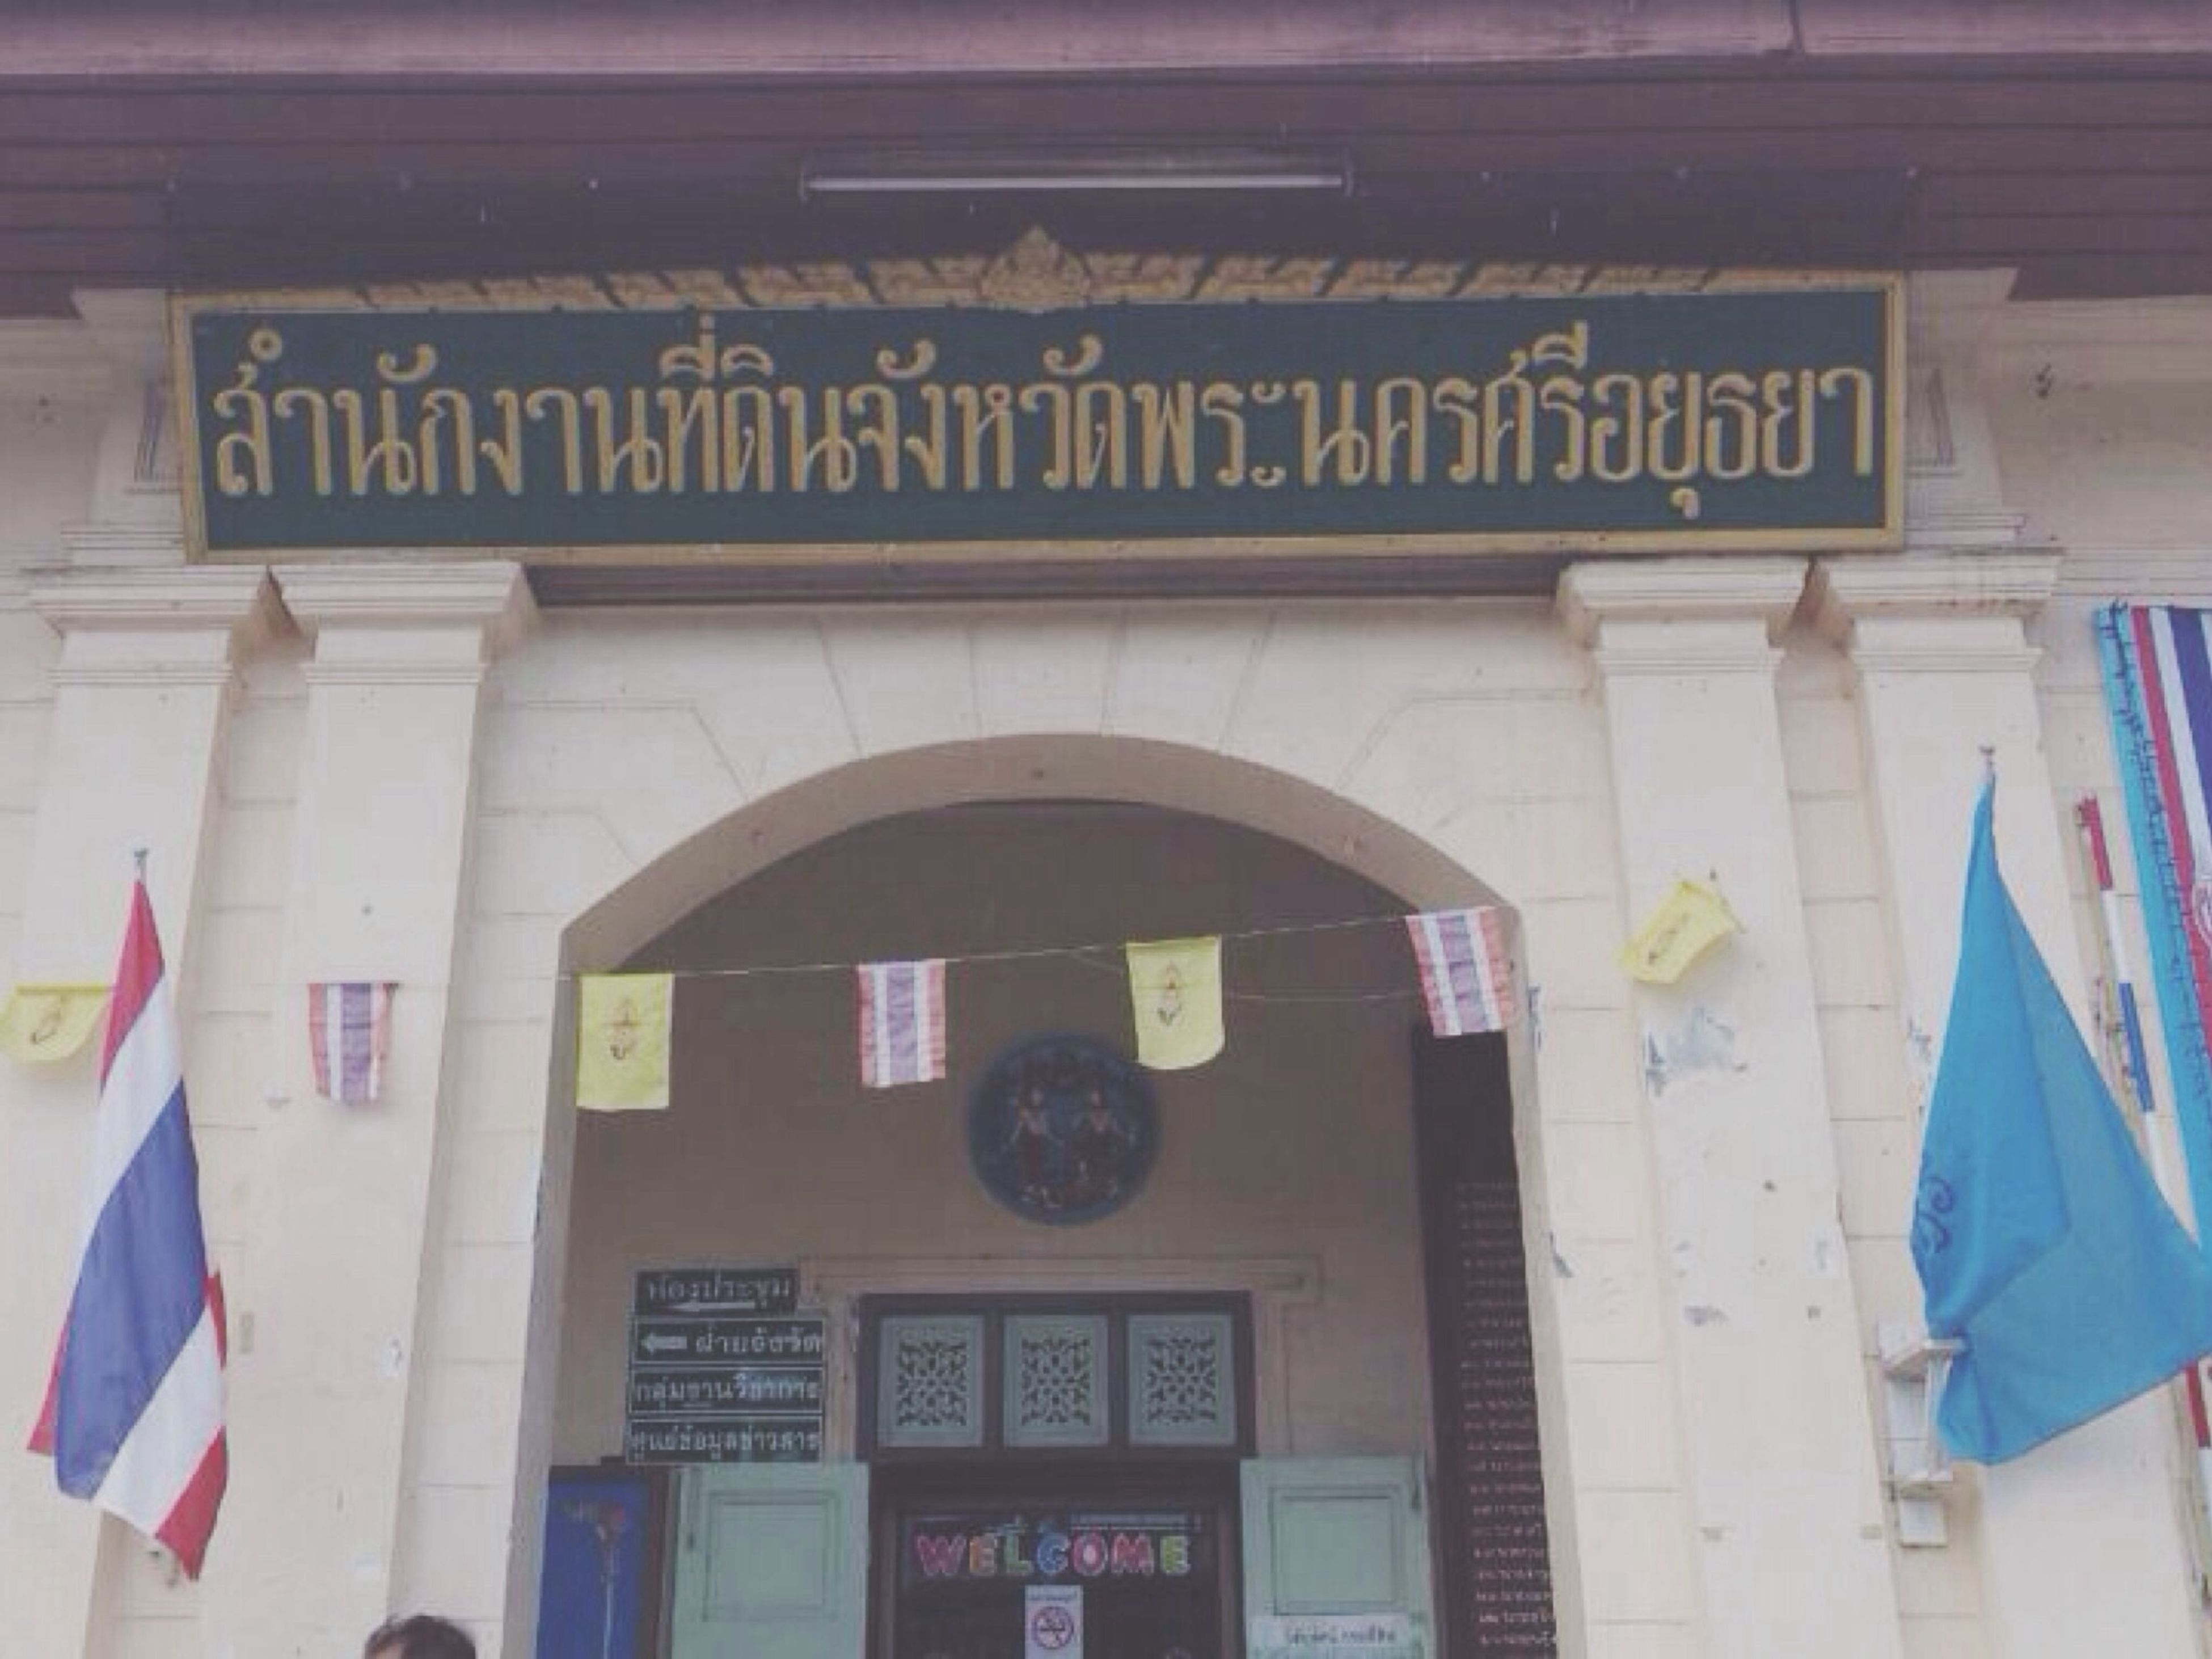 Ayutthaya Province Land Registry Land Titles Office Land Registry